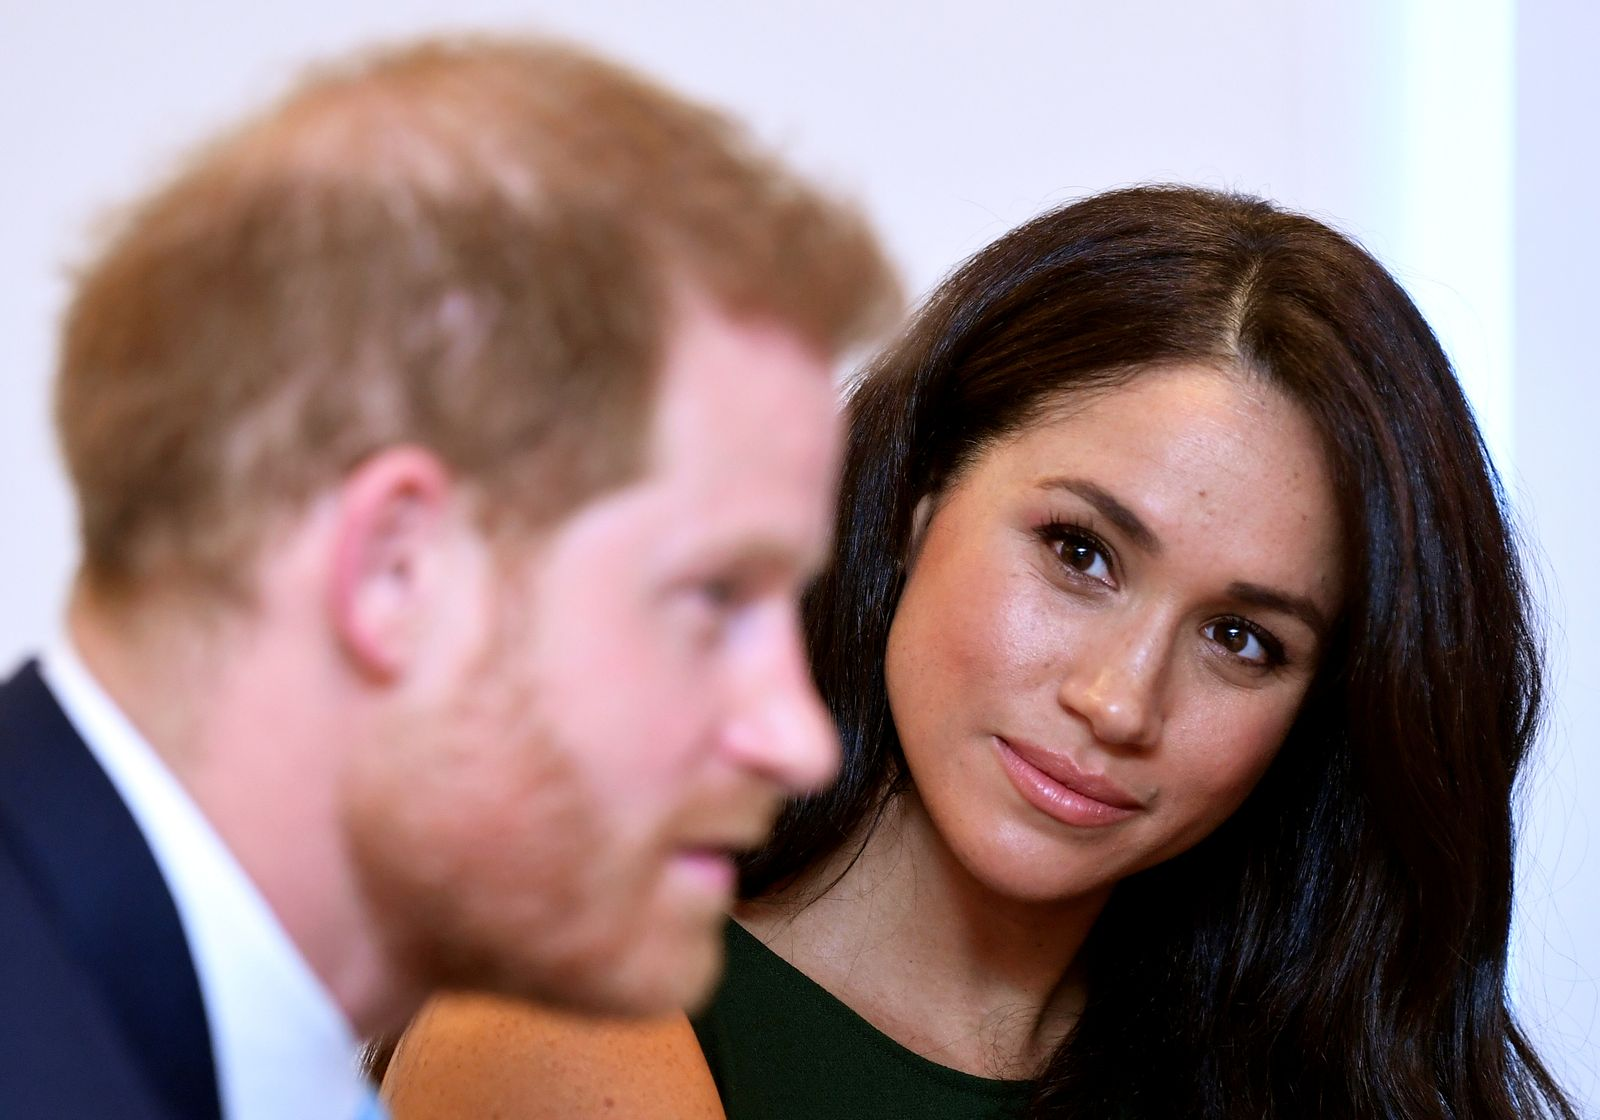 FILE PHOTO: Britain's Prince Harry and Meghan, Duchess of Sussex, attend the WellChild Awards Ceremony in London